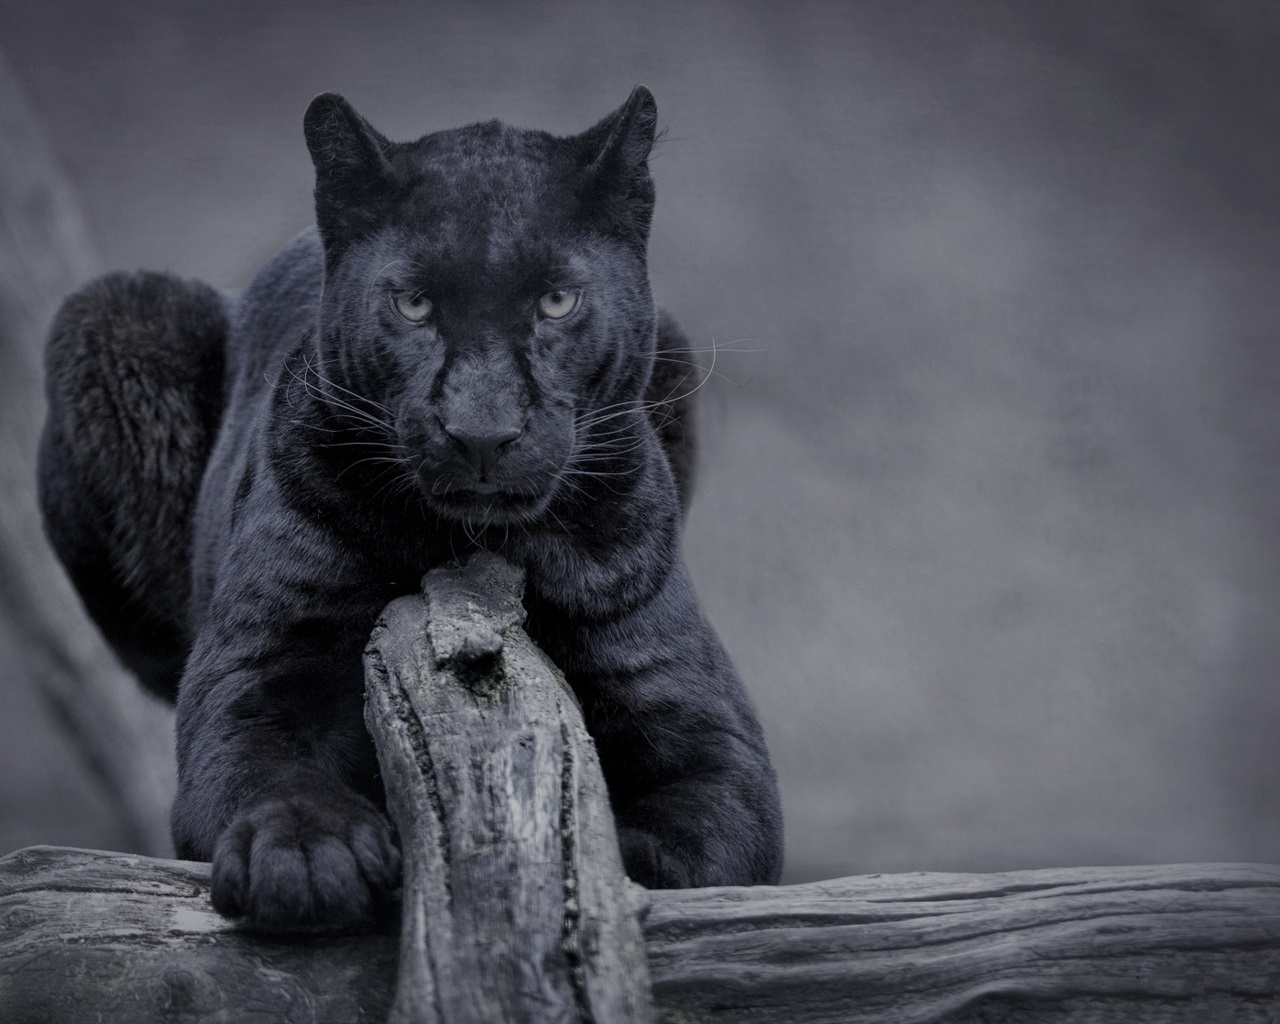 Iphone 4s White Wallpaper Wallpaper Black Panther Wildlife Front View 1920x1200 Hd